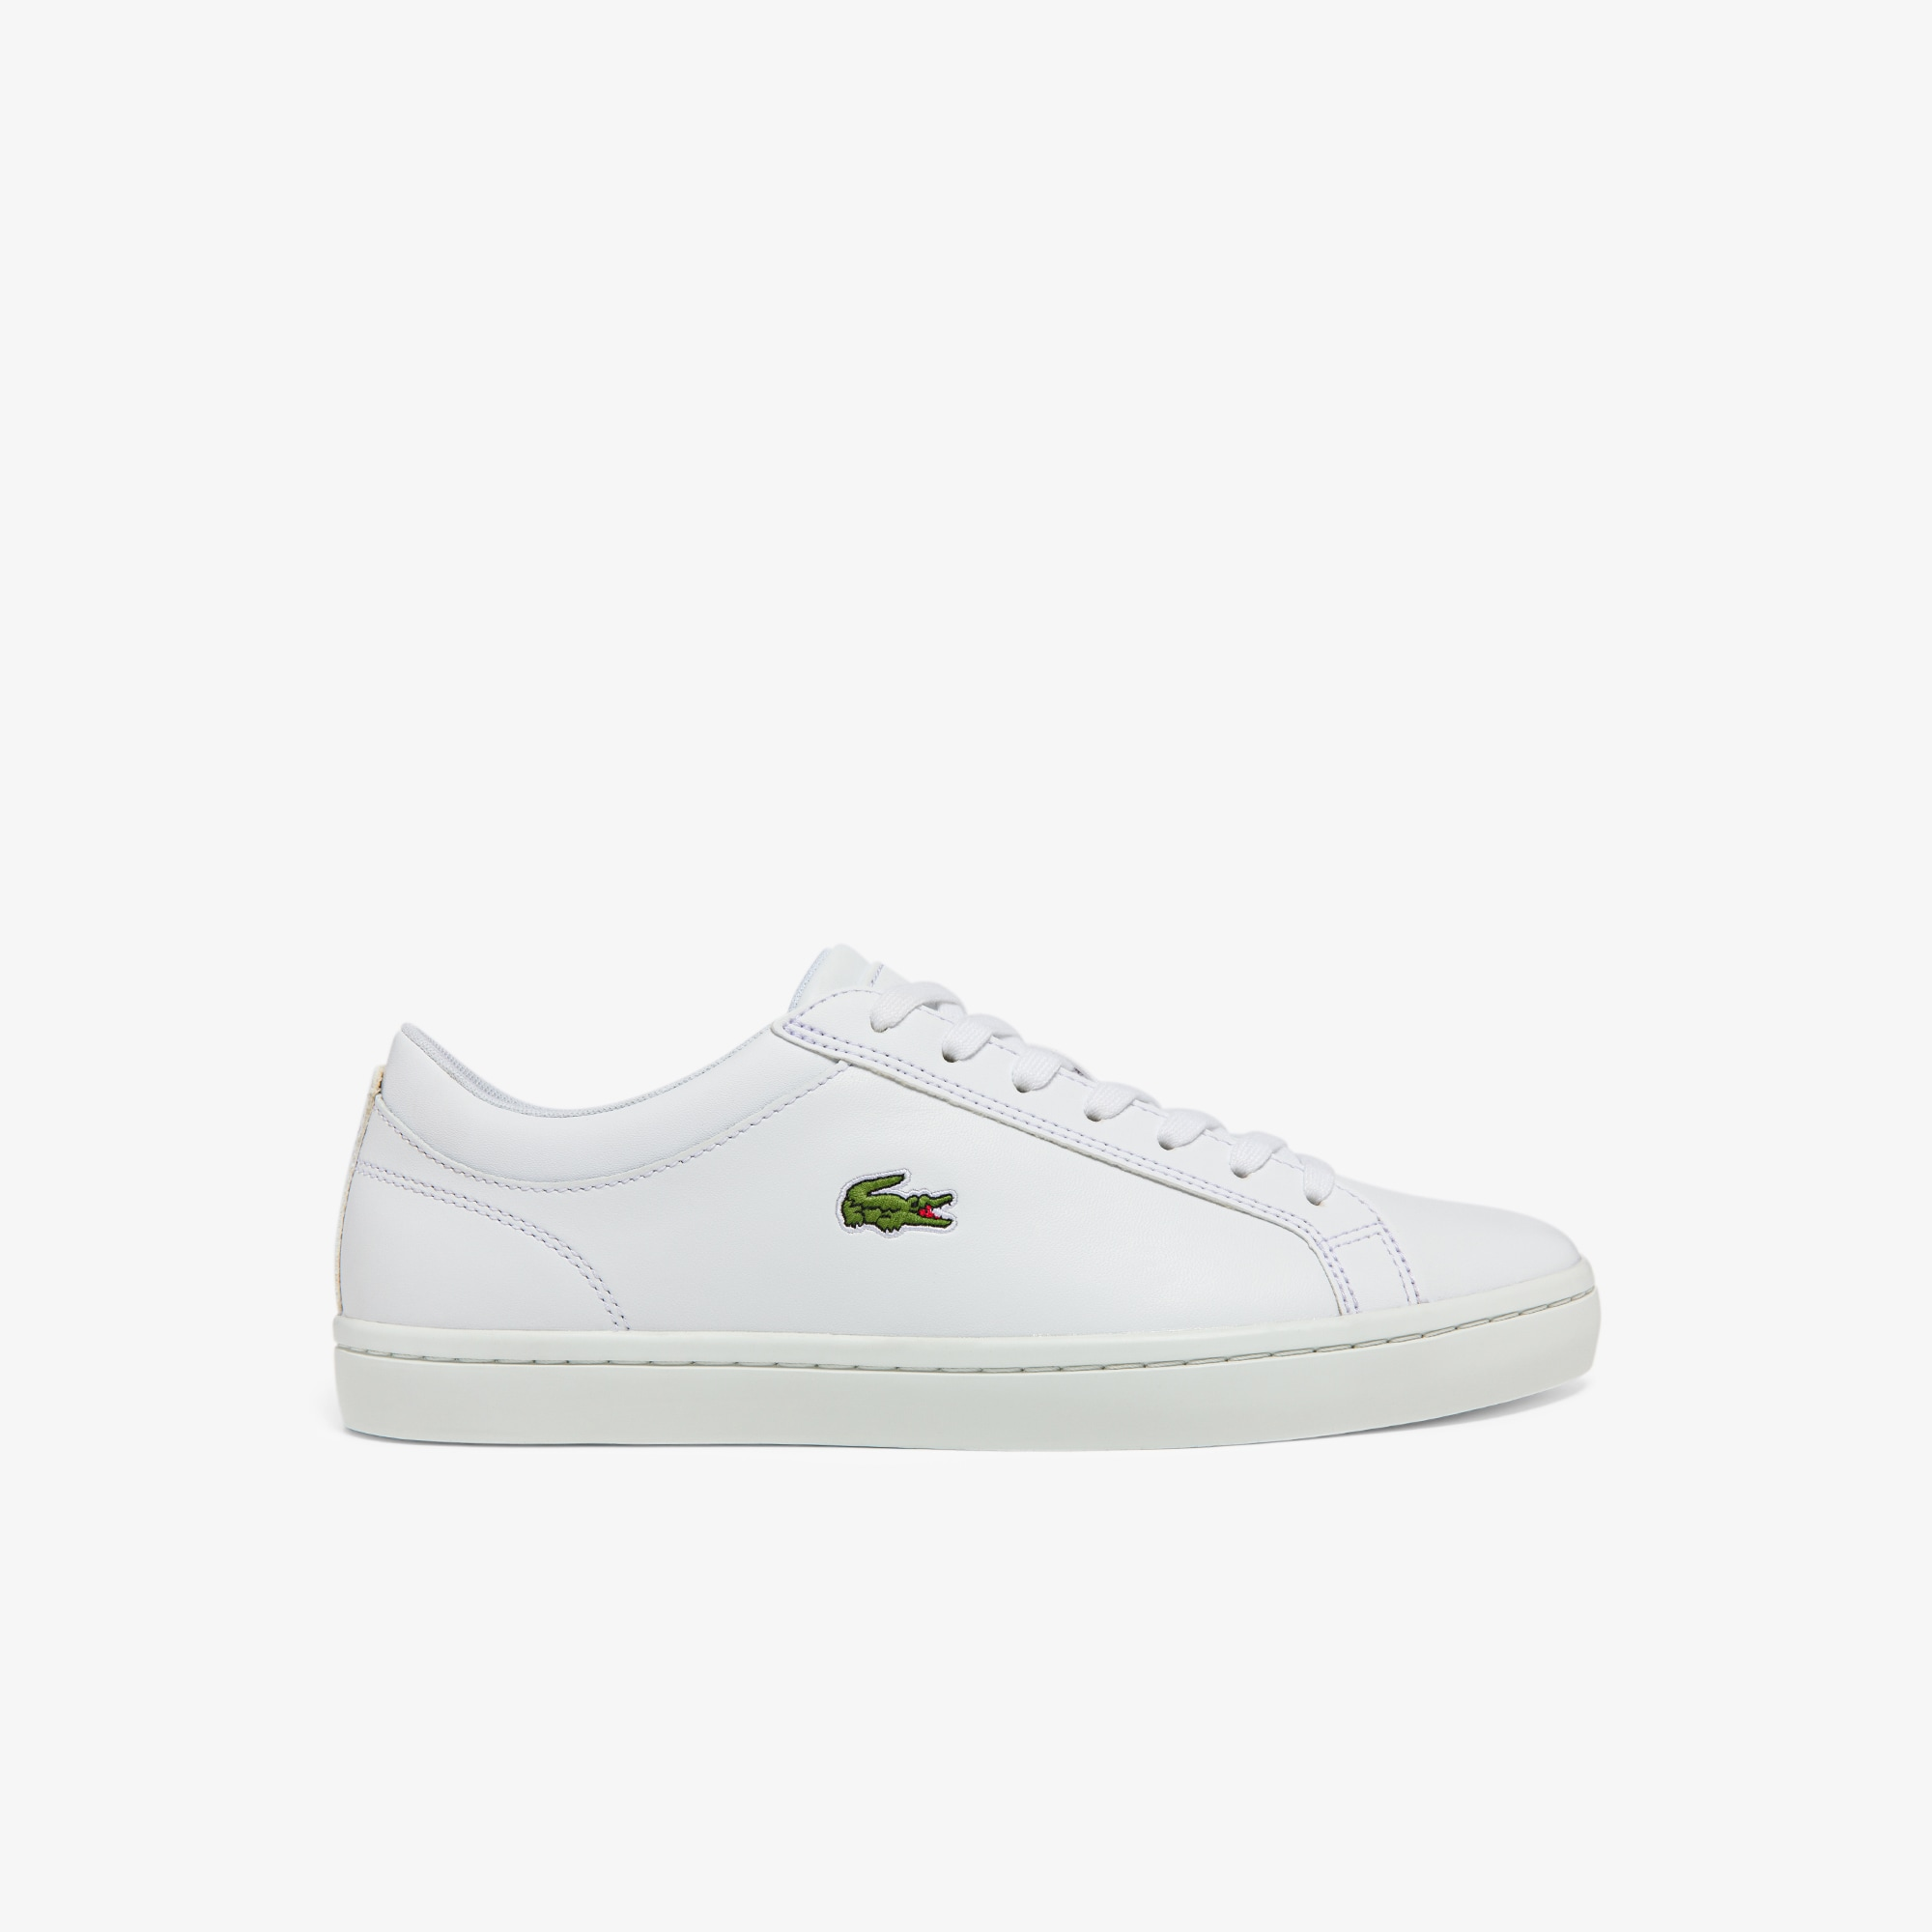 7c44219e1 Lacoste shoes for men: Sneakers, Trainers, Boots | LACOSTE